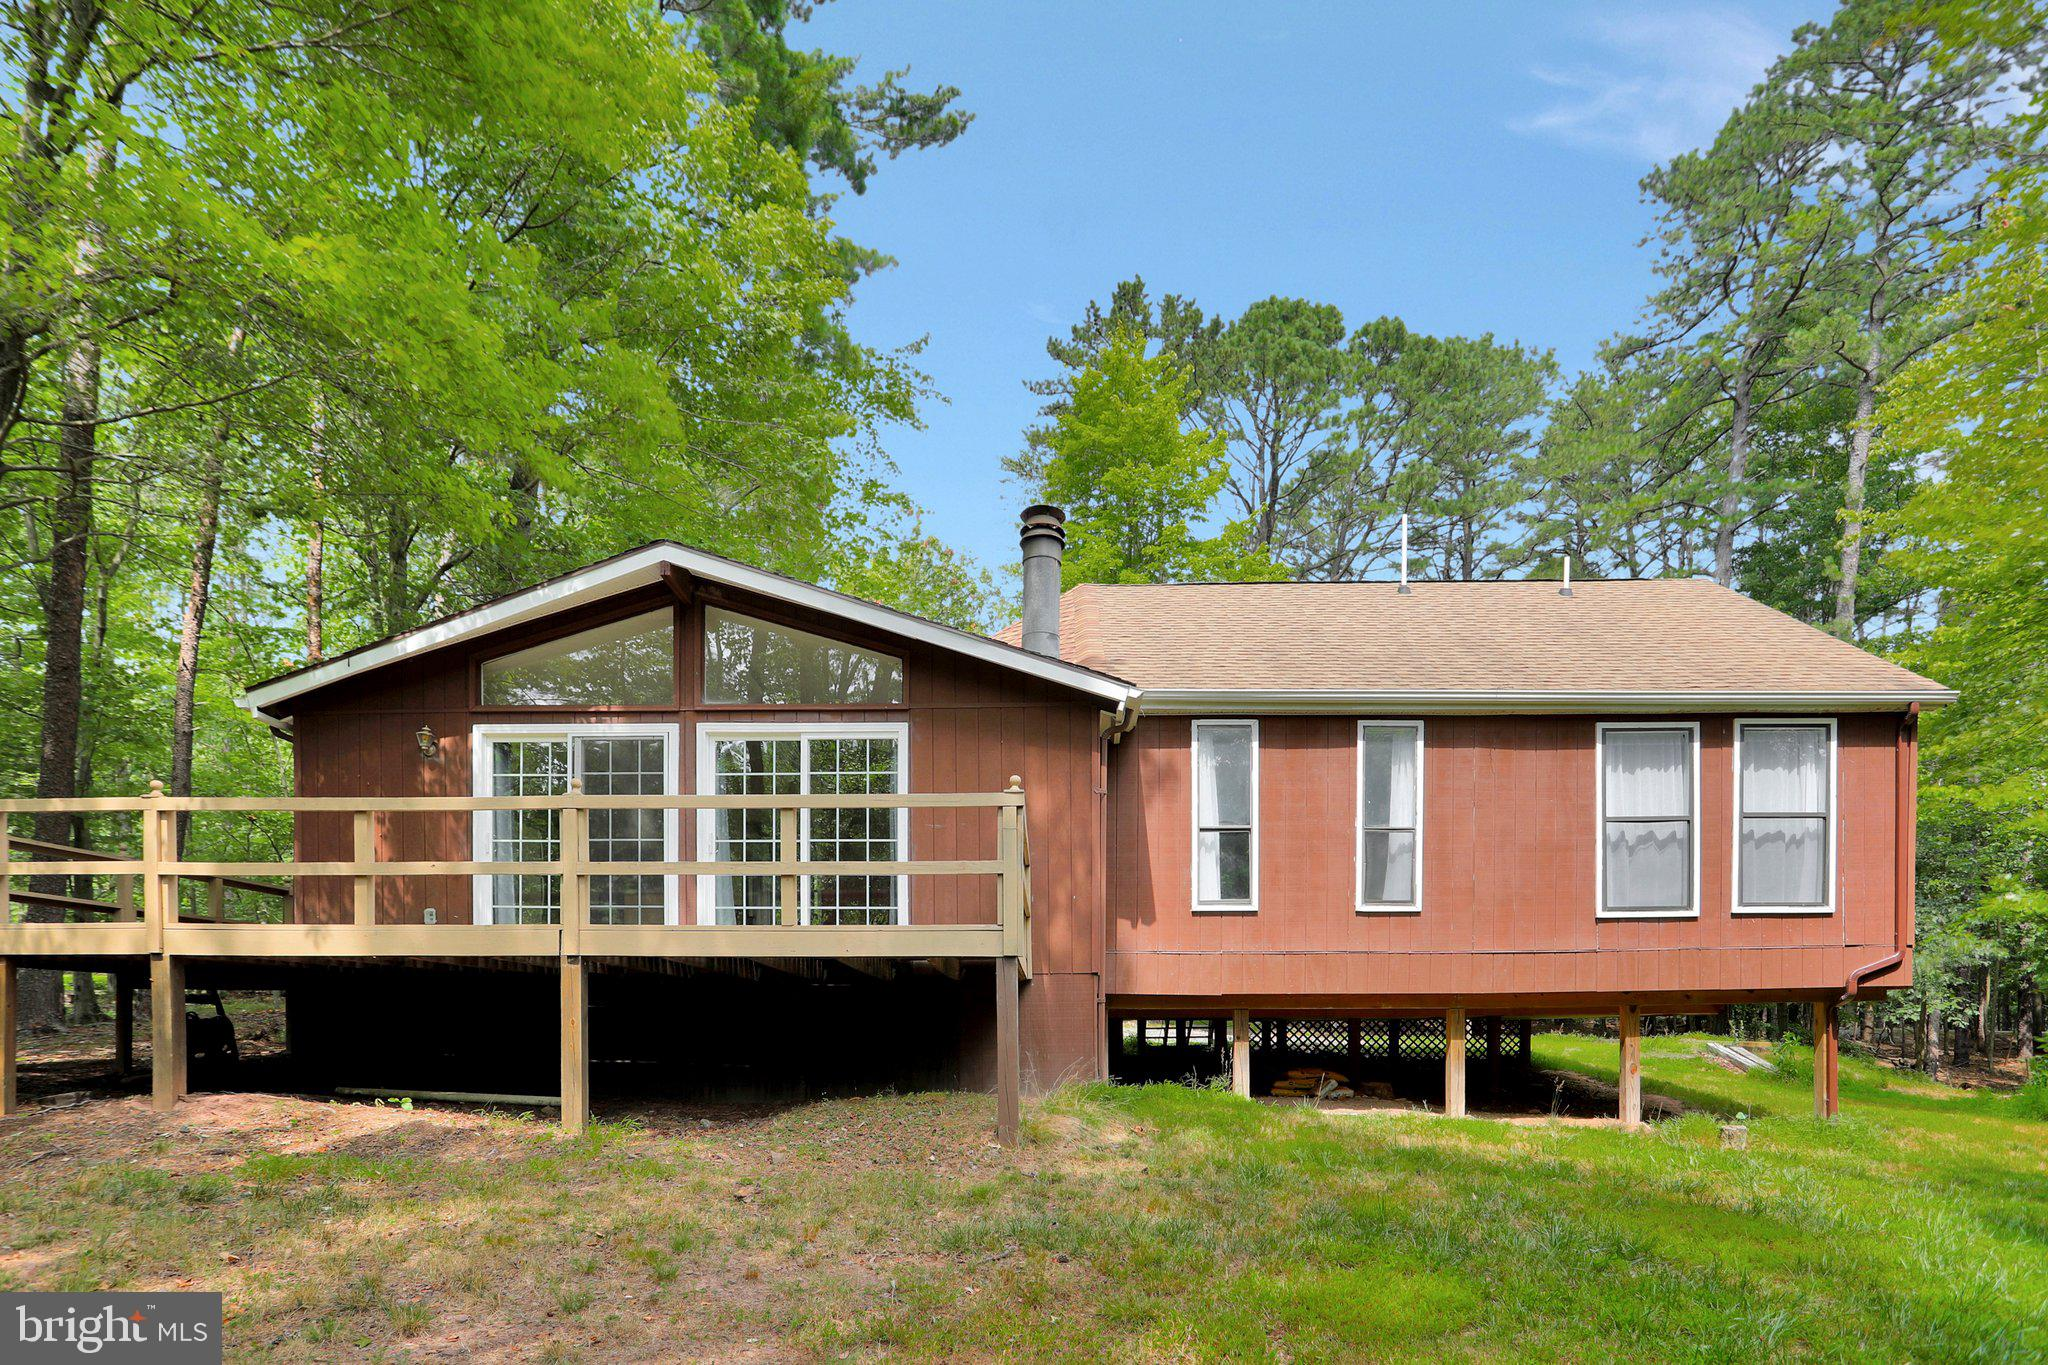 3 bed, 2 bath log home is situated on .81 acres. Large master suite with a huge walk-in closet and f